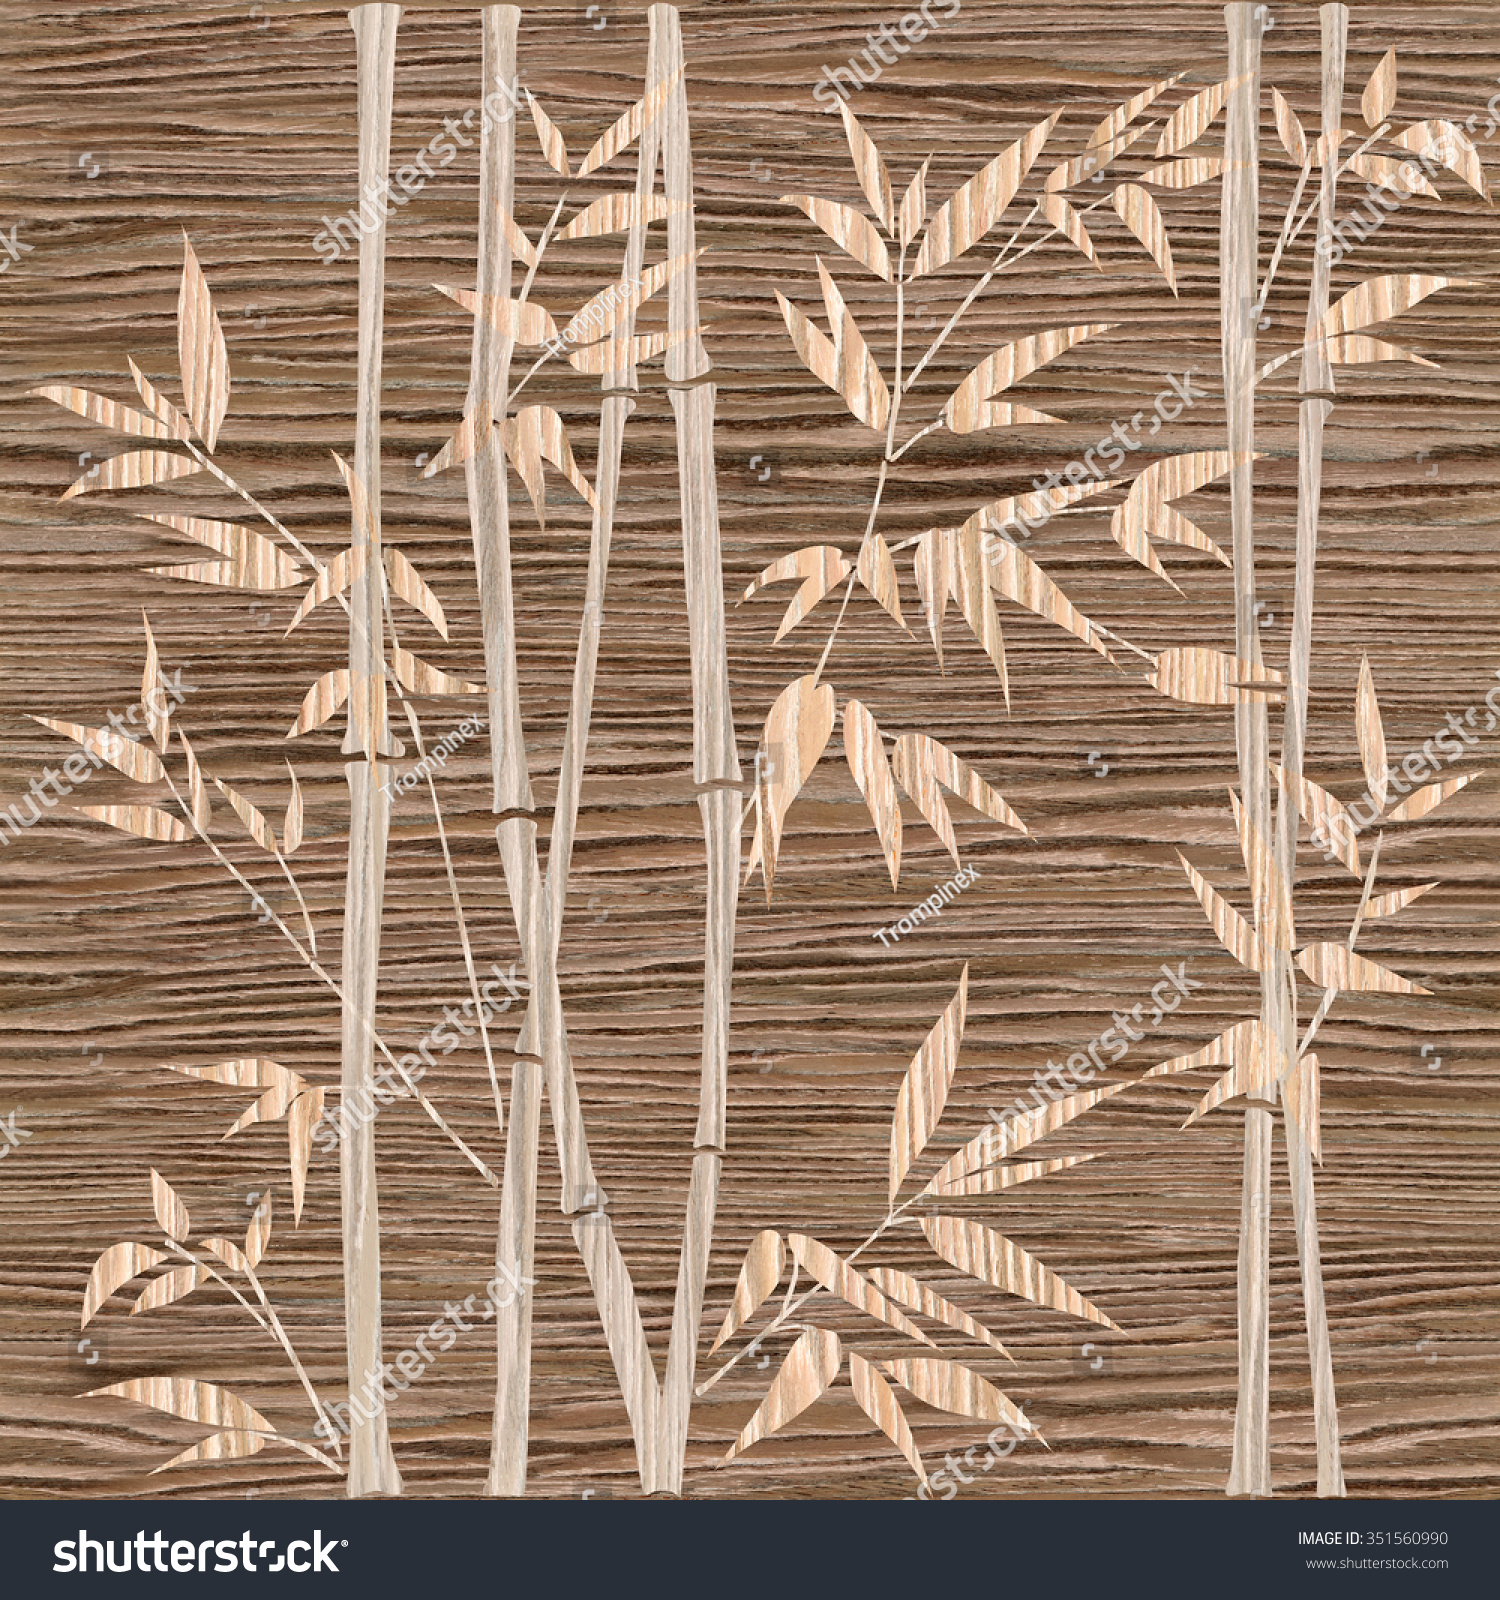 Marvelous photograph of  Panel Pattern Blasted Oak Groove Wood Texture Stock Photo 351560990 with #926439 color and 1500x1600 pixels